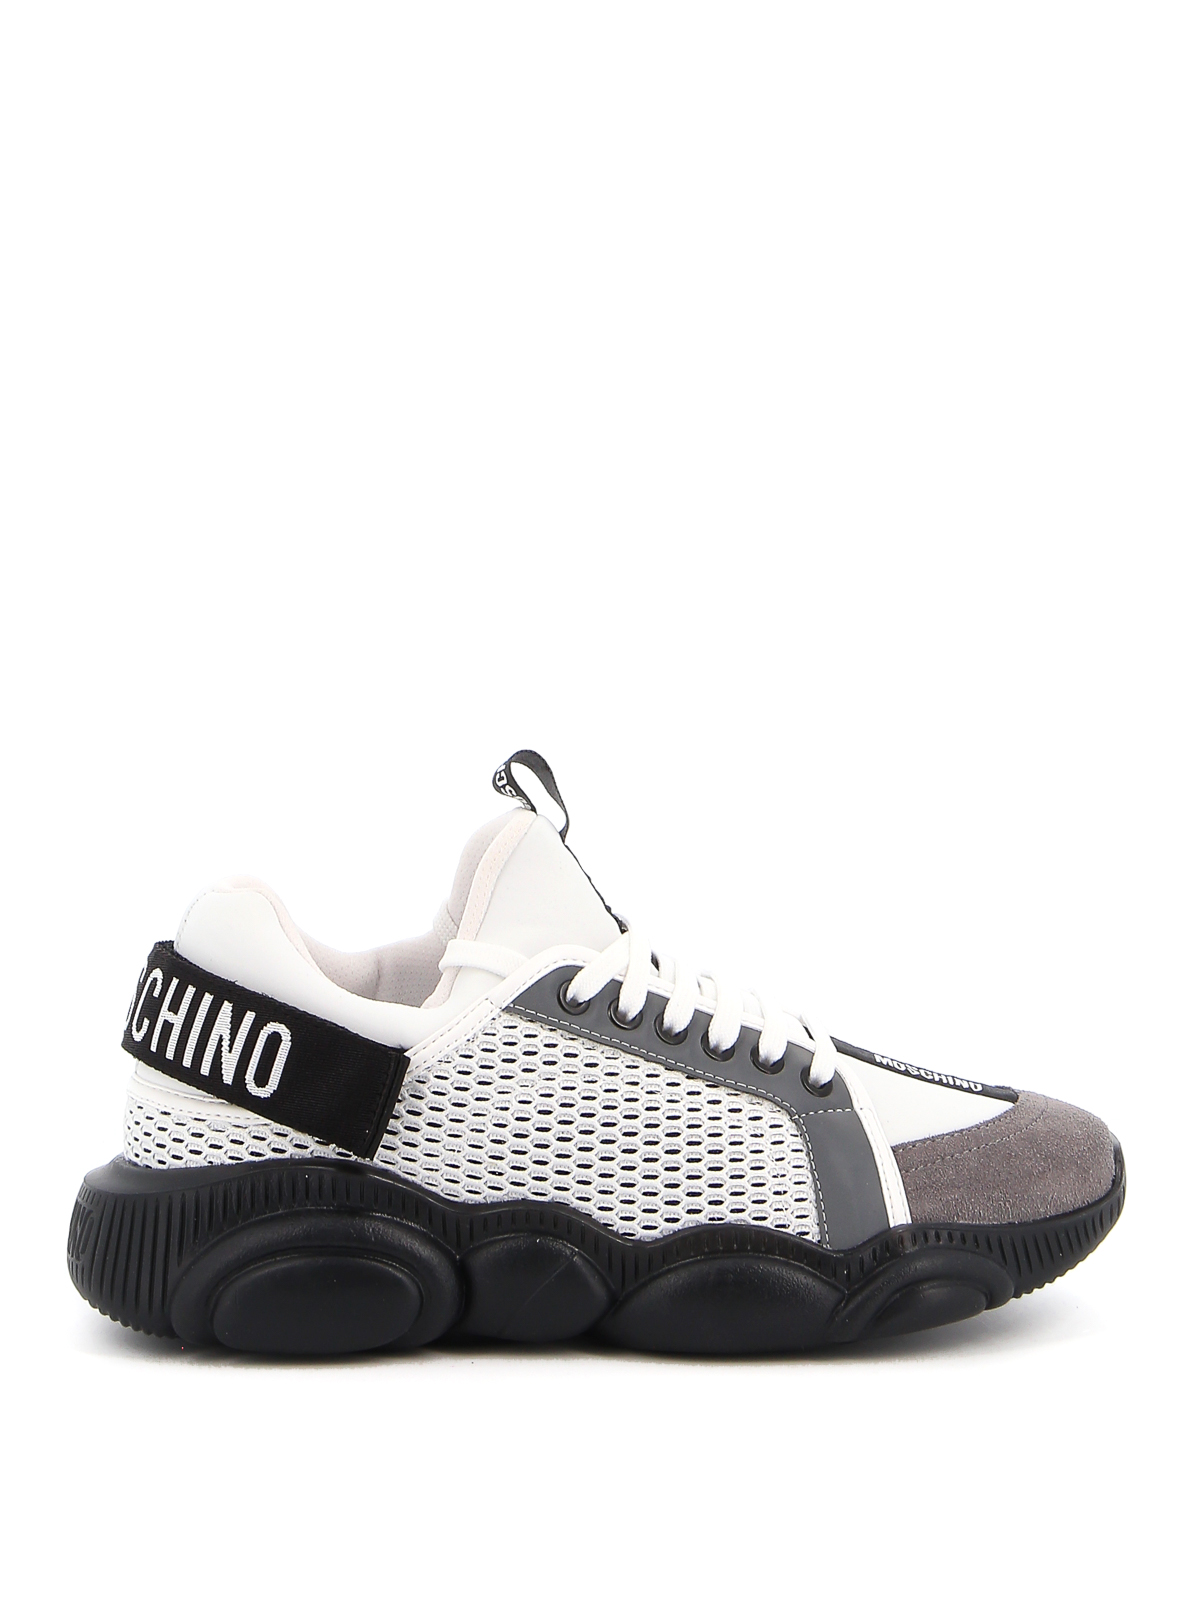 Moschino Sneakers TEDDY MESH AND LAMINATED DETAIL SNEAKERS